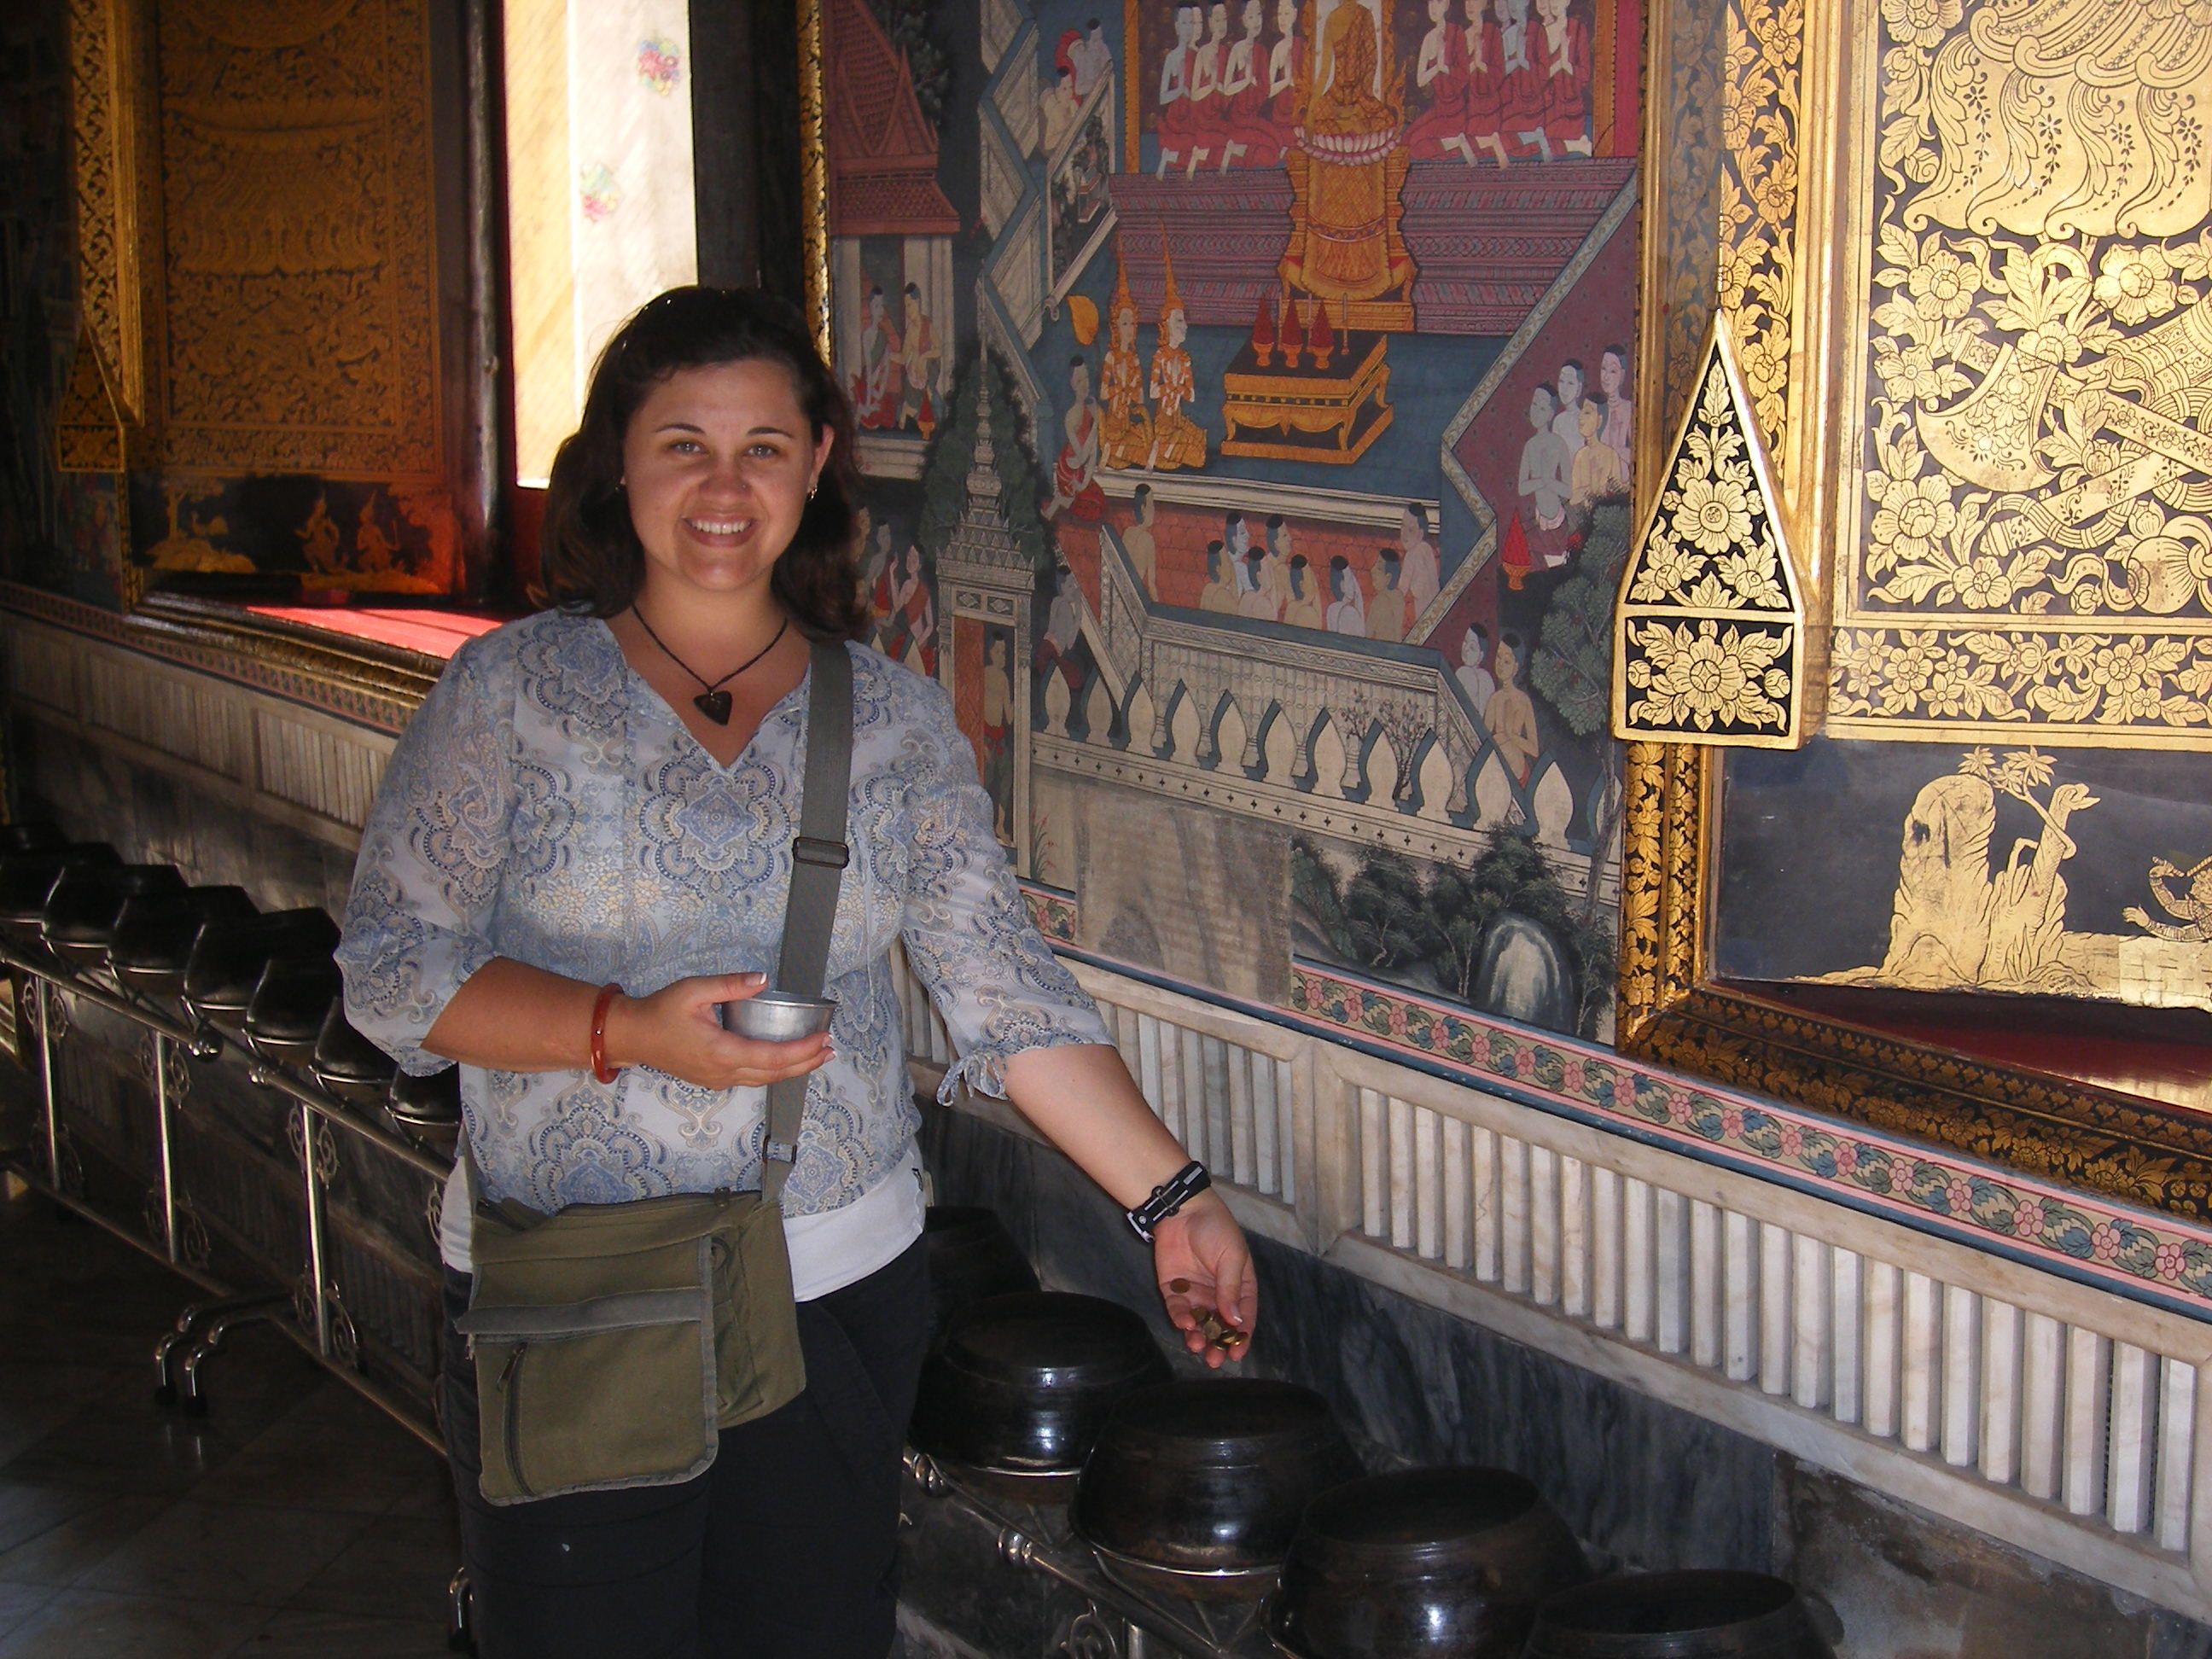 Depositing lucky coins into the wishing pots at the reclining Buddha